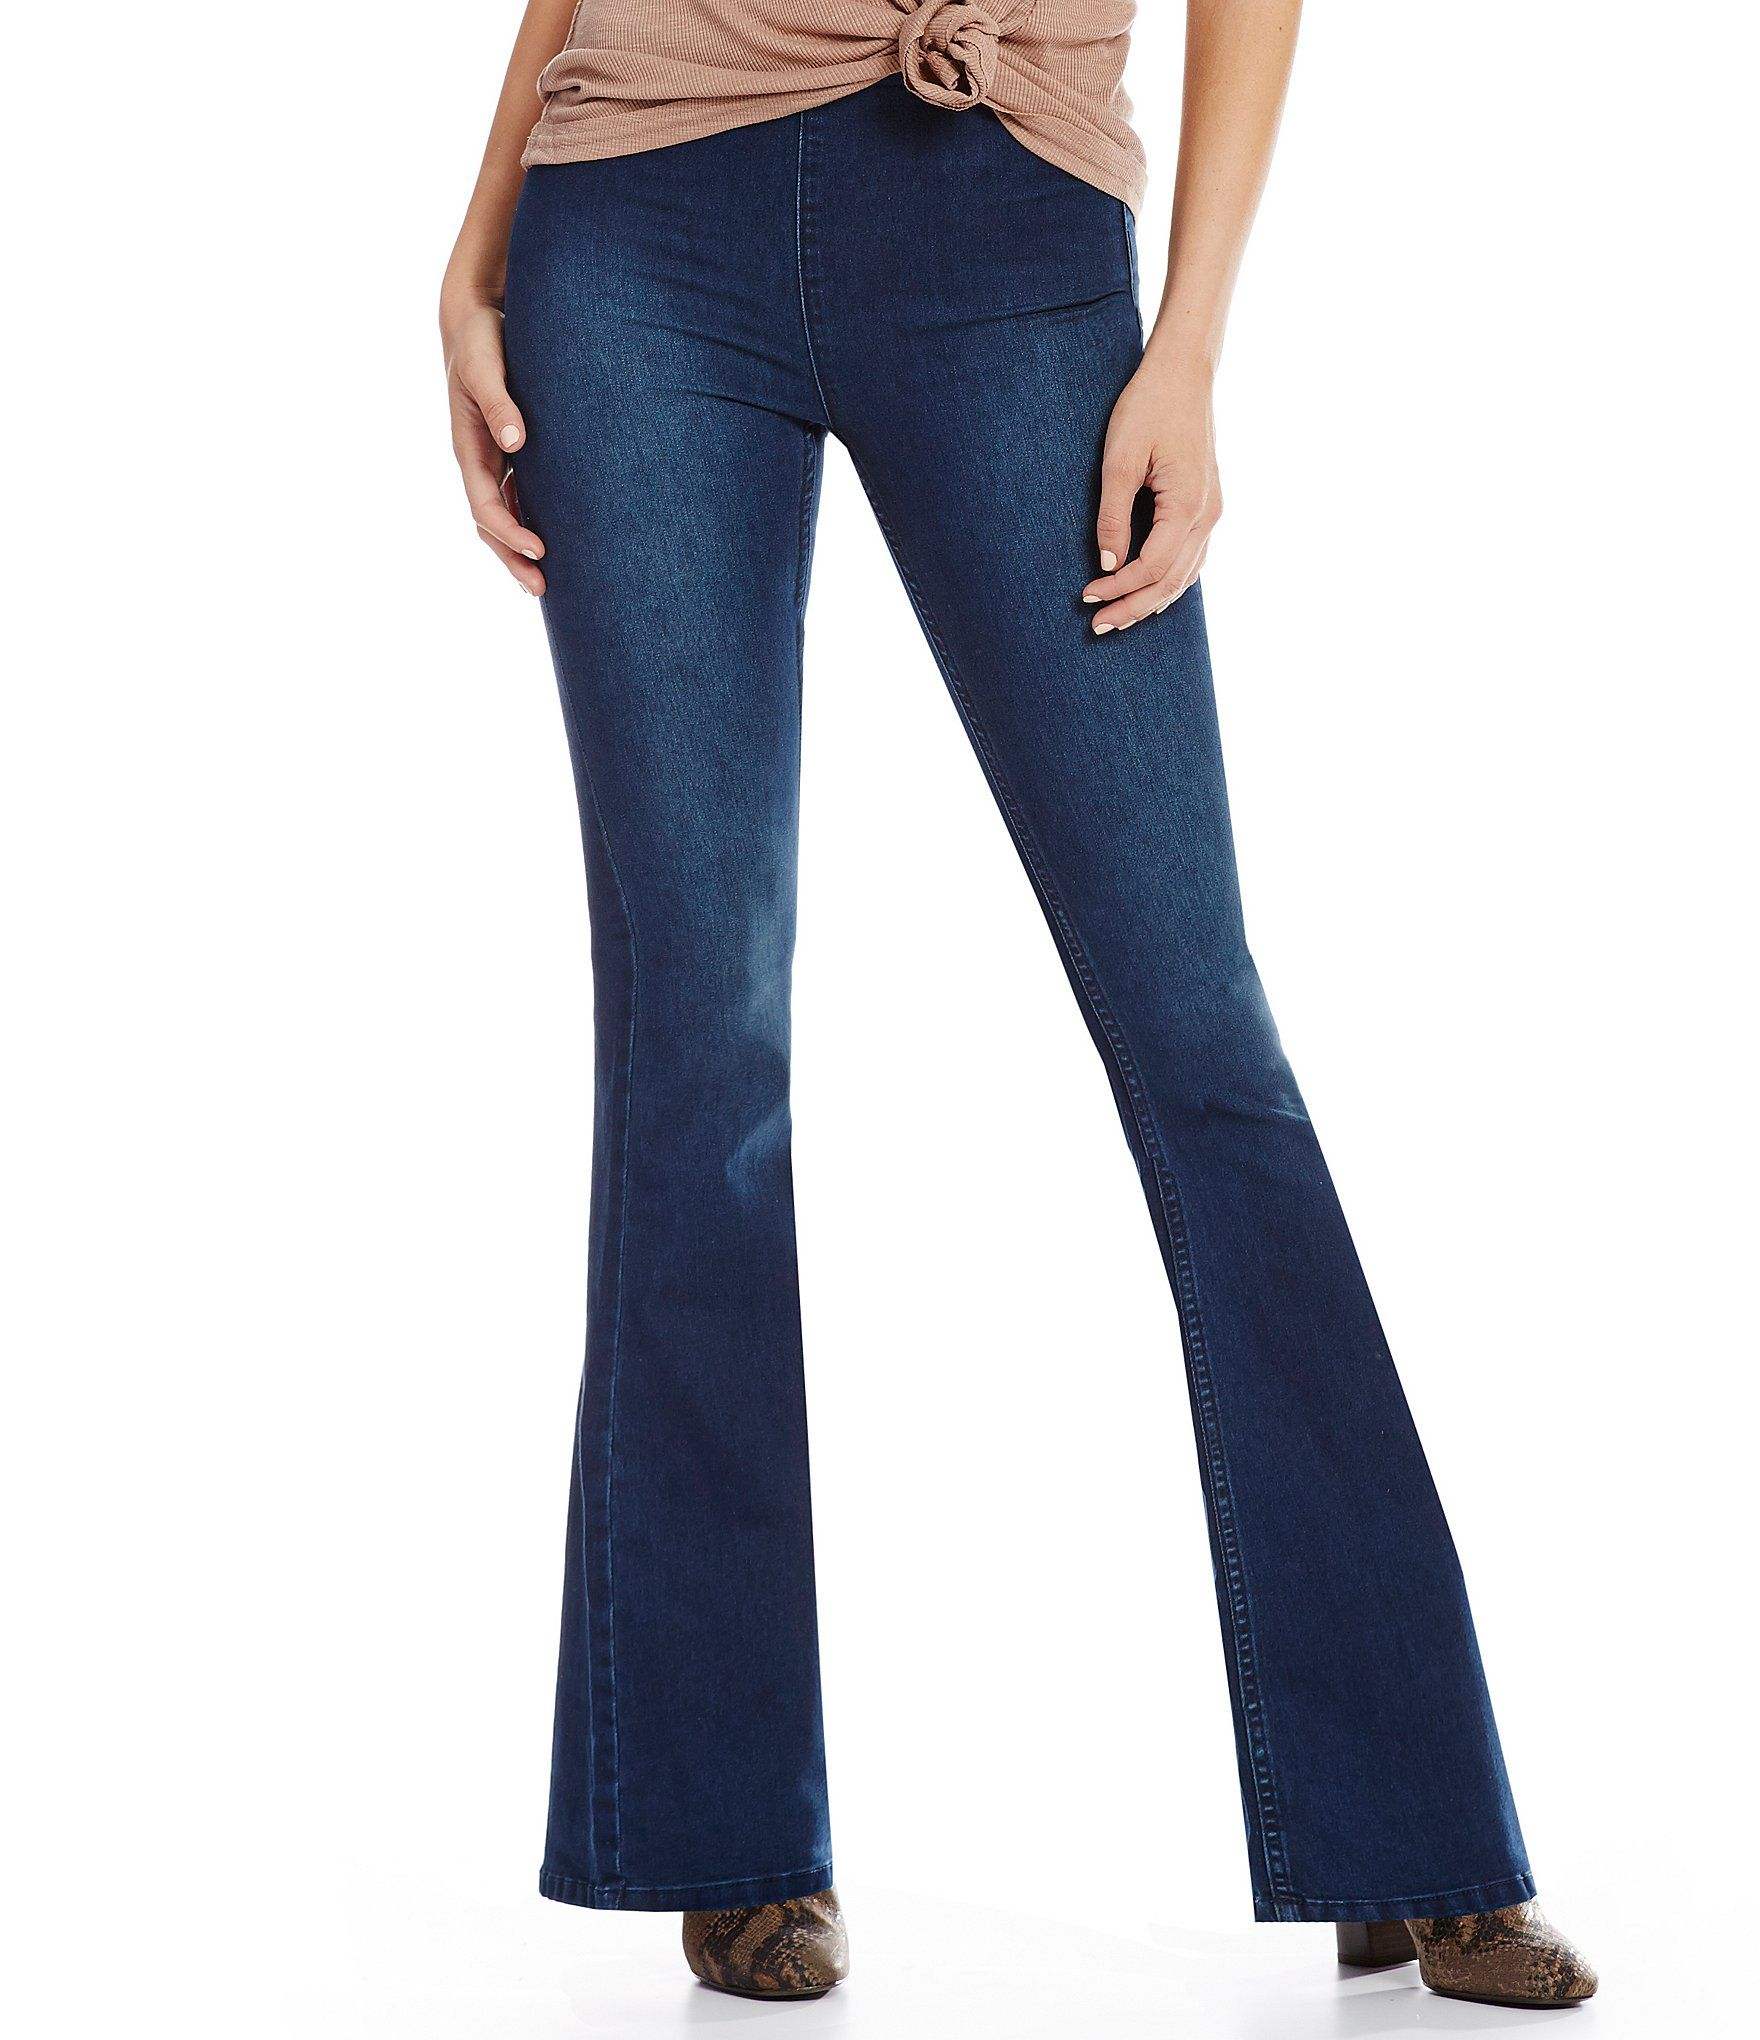 Free People We the Free Gummy Flared Pull-On Jeans | Dillard's